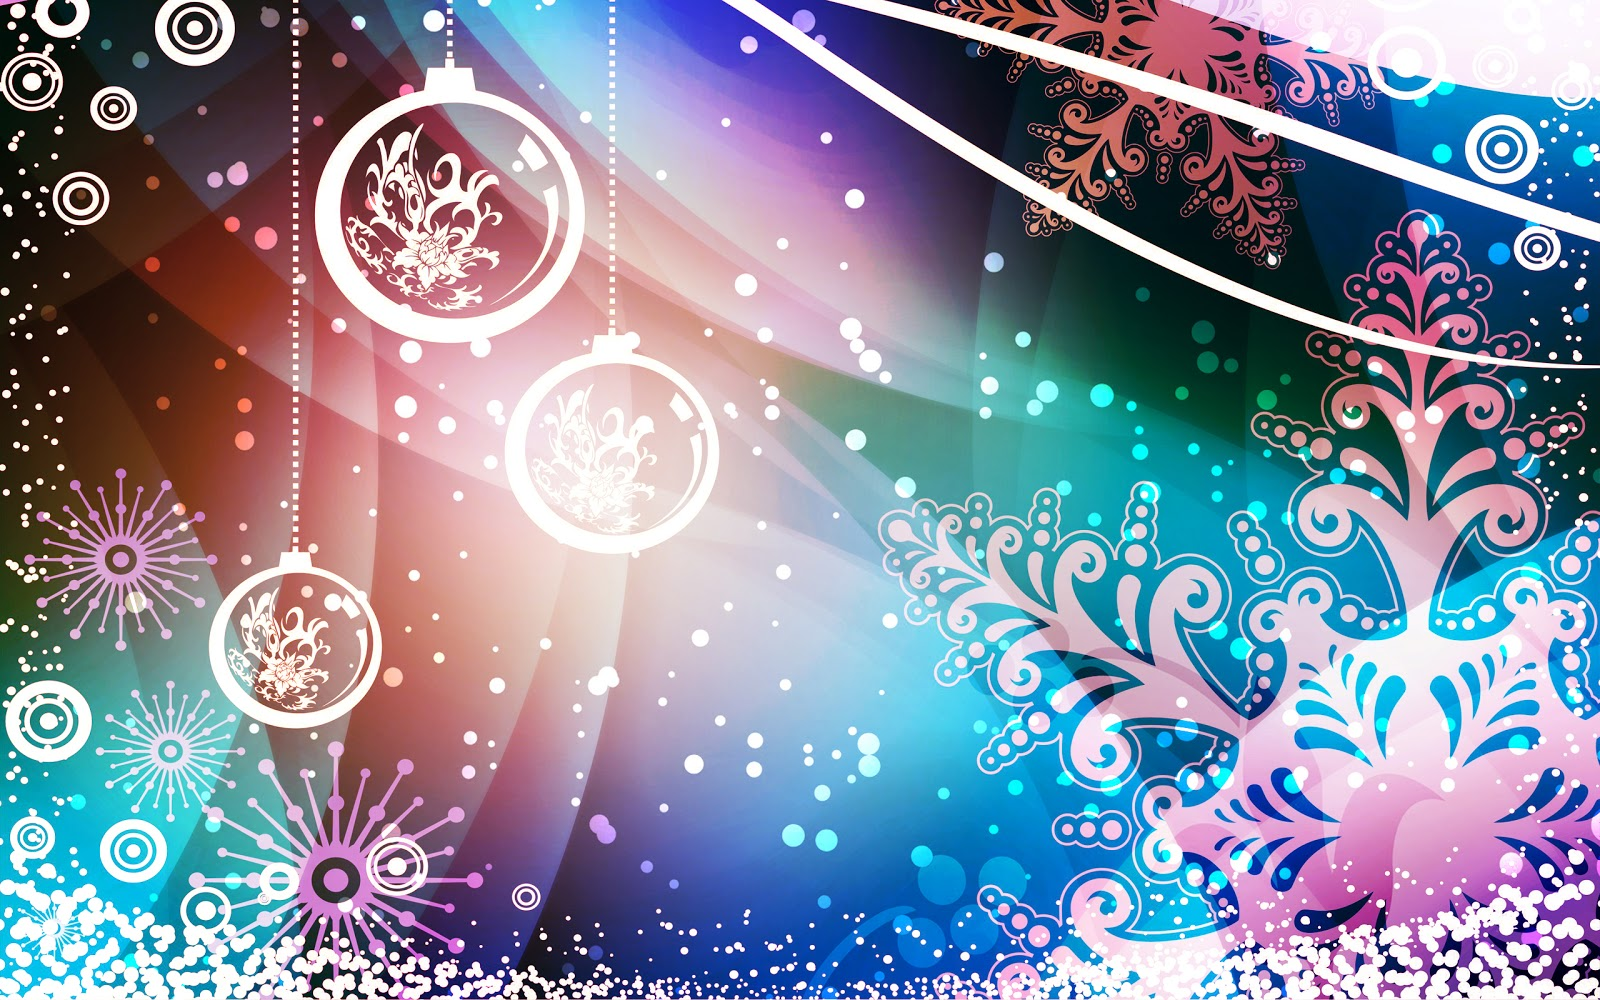 Merry Christmas 2013 WallpaperComputer Wallpaper 1600x1000